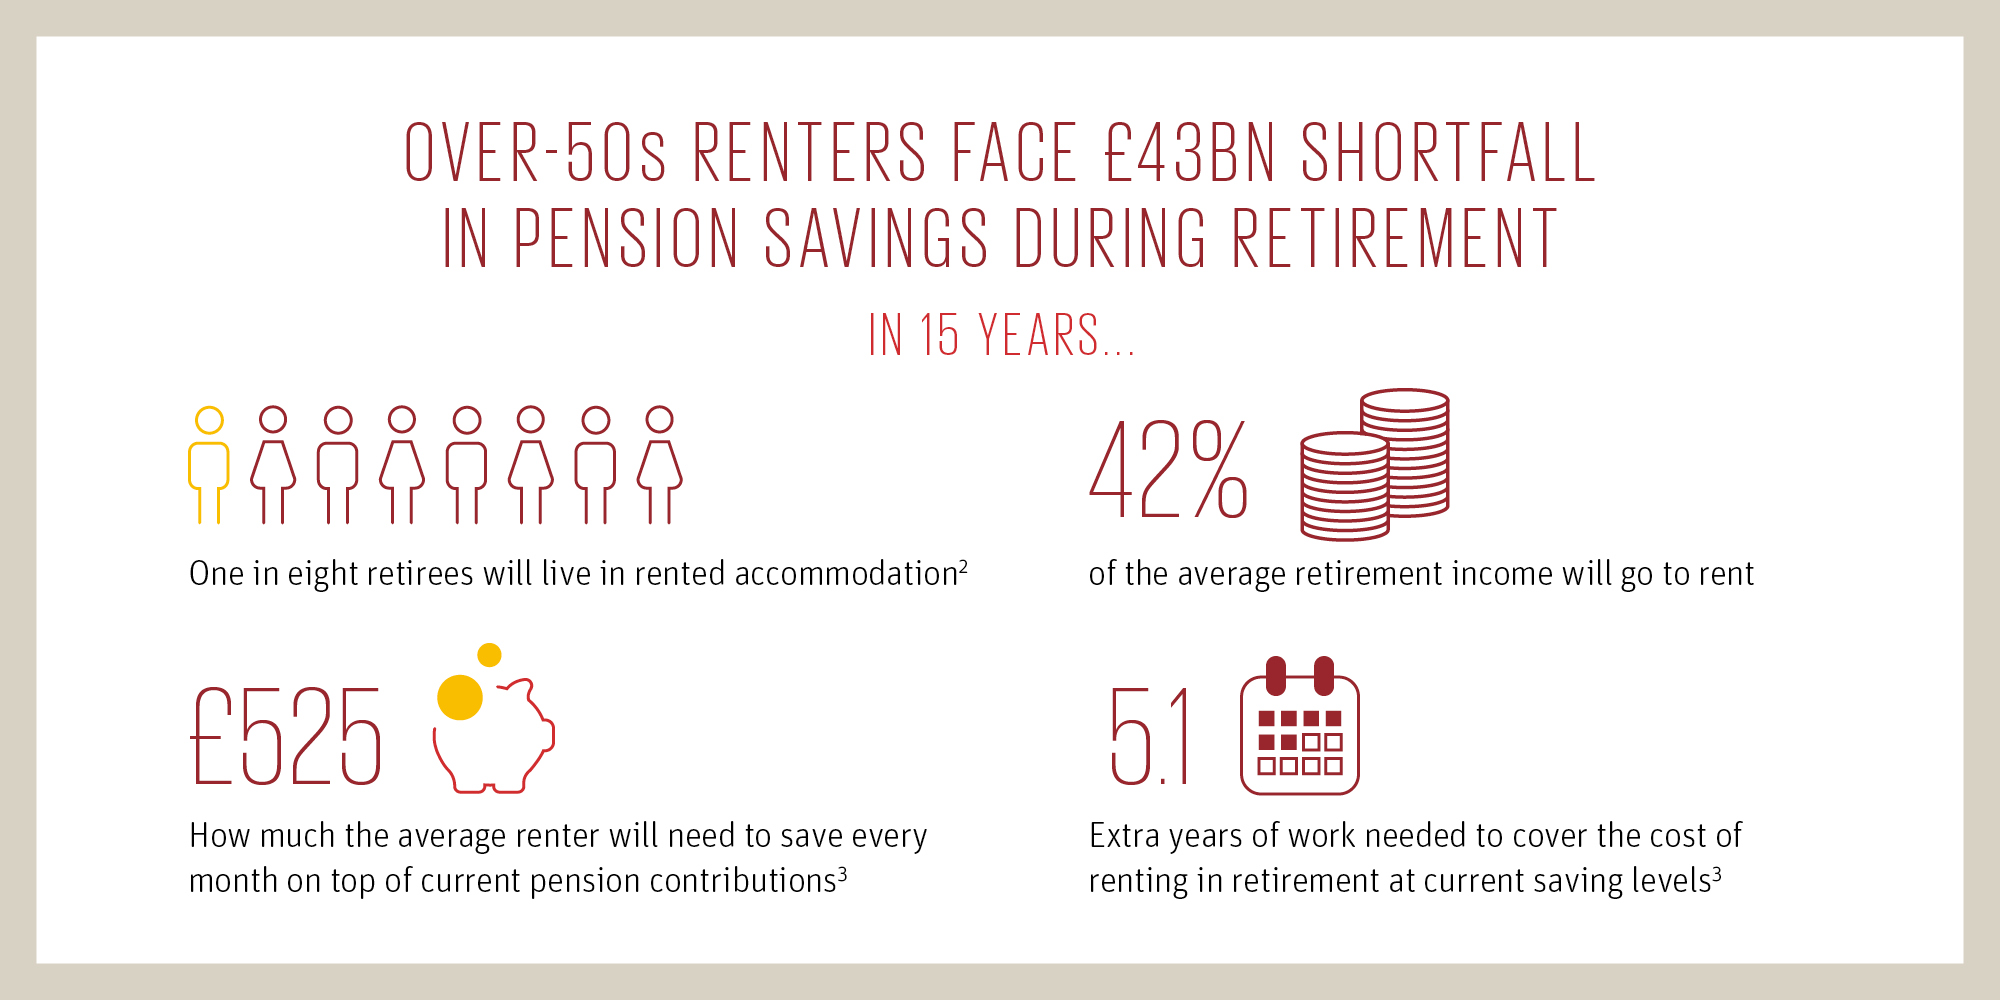 Over-50s renters face £43bn shortfall in pension savings during retirement